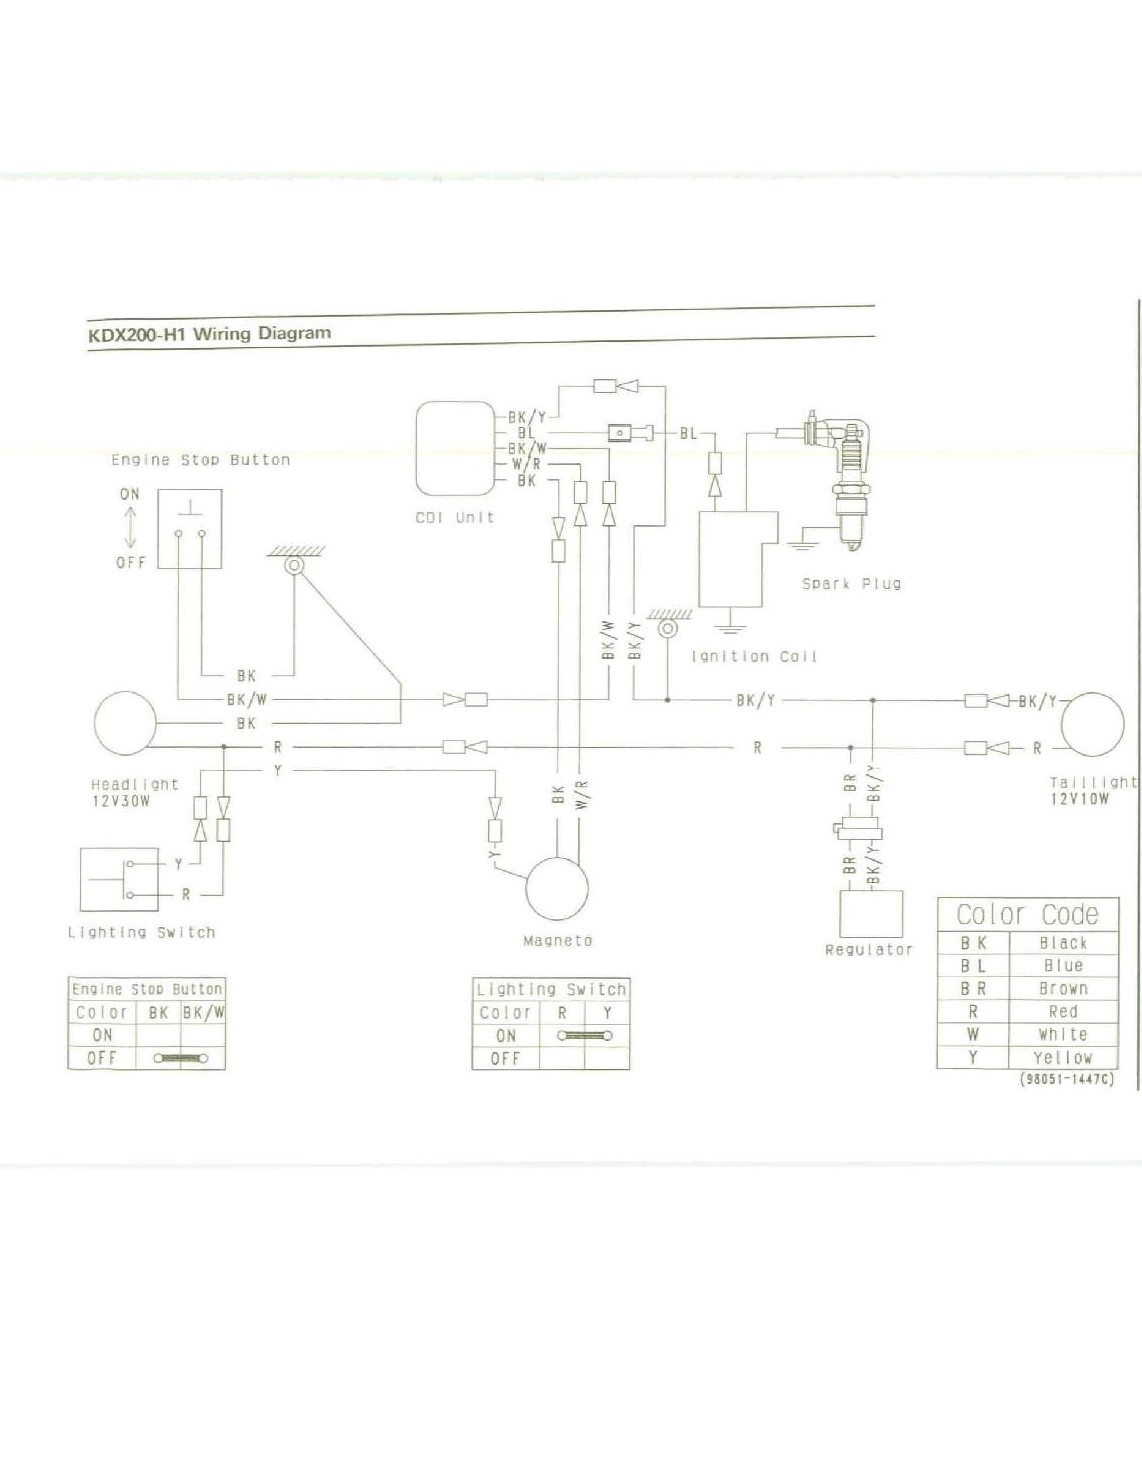 Kdx 220 Wiring Diagram - Wiring Diagram Online Net Wiring Diagram on gmc fuse box diagrams, battery diagrams, troubleshooting diagrams, electrical diagrams, transformer diagrams, switch diagrams, pinout diagrams, hvac diagrams, honda motorcycle repair diagrams, smart car diagrams, friendship bracelet diagrams, electronic circuit diagrams, sincgars radio configurations diagrams, engine diagrams, lighting diagrams, series and parallel circuits diagrams, motor diagrams, led circuit diagrams, internet of things diagrams,